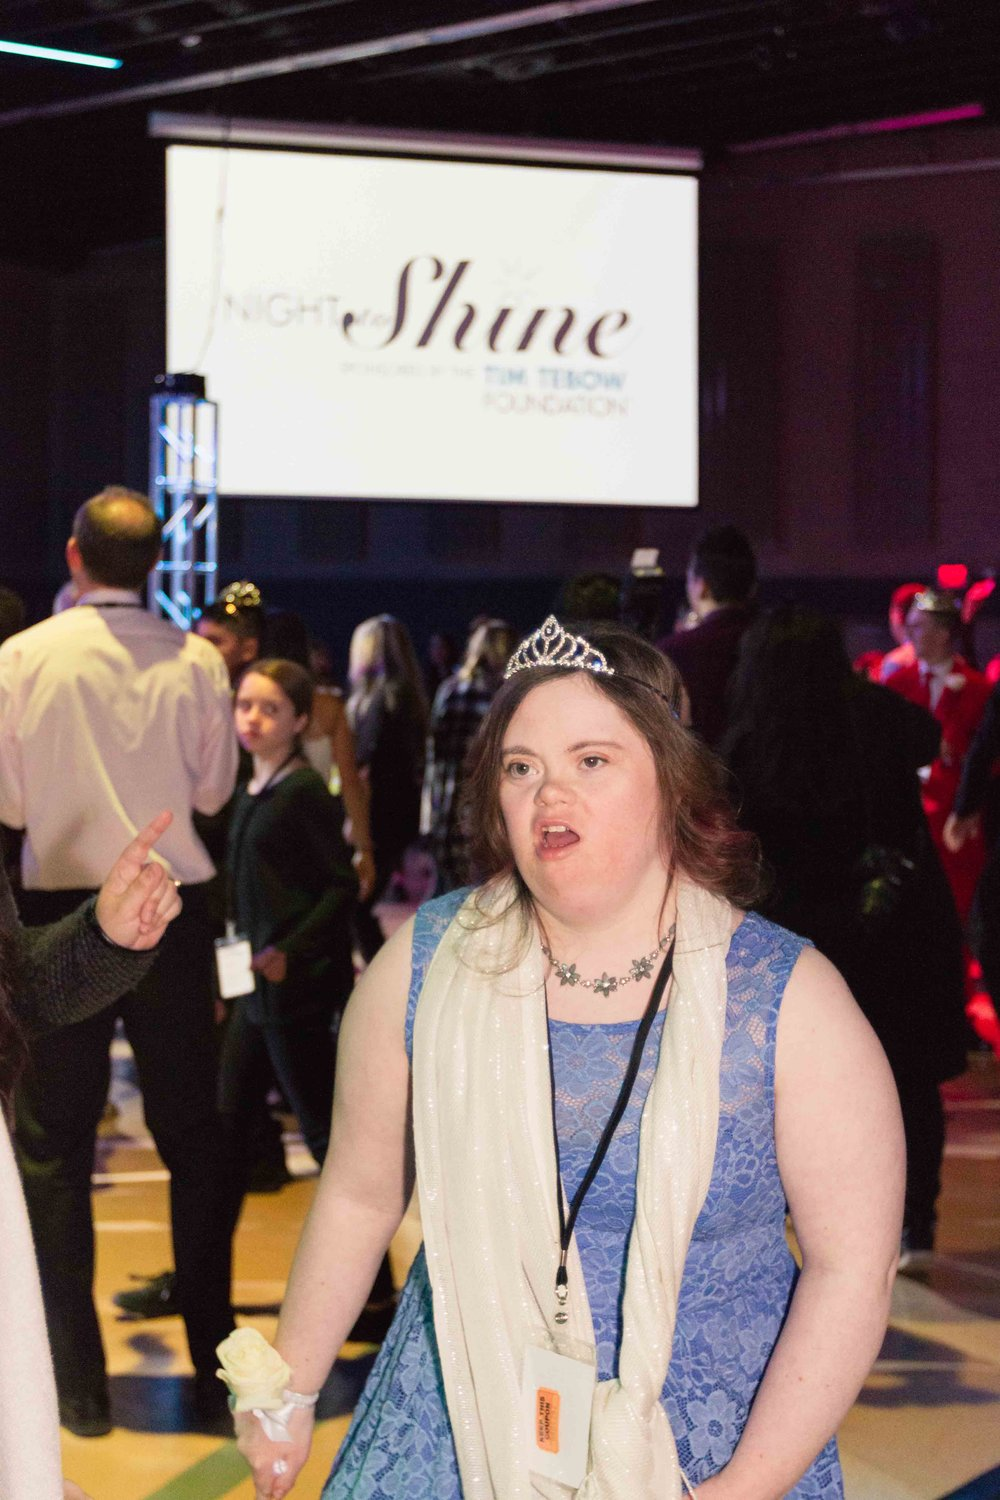 InBetweenDreamsWedding_NightToShine2018_HorizonChurch (403 of 514).jpg